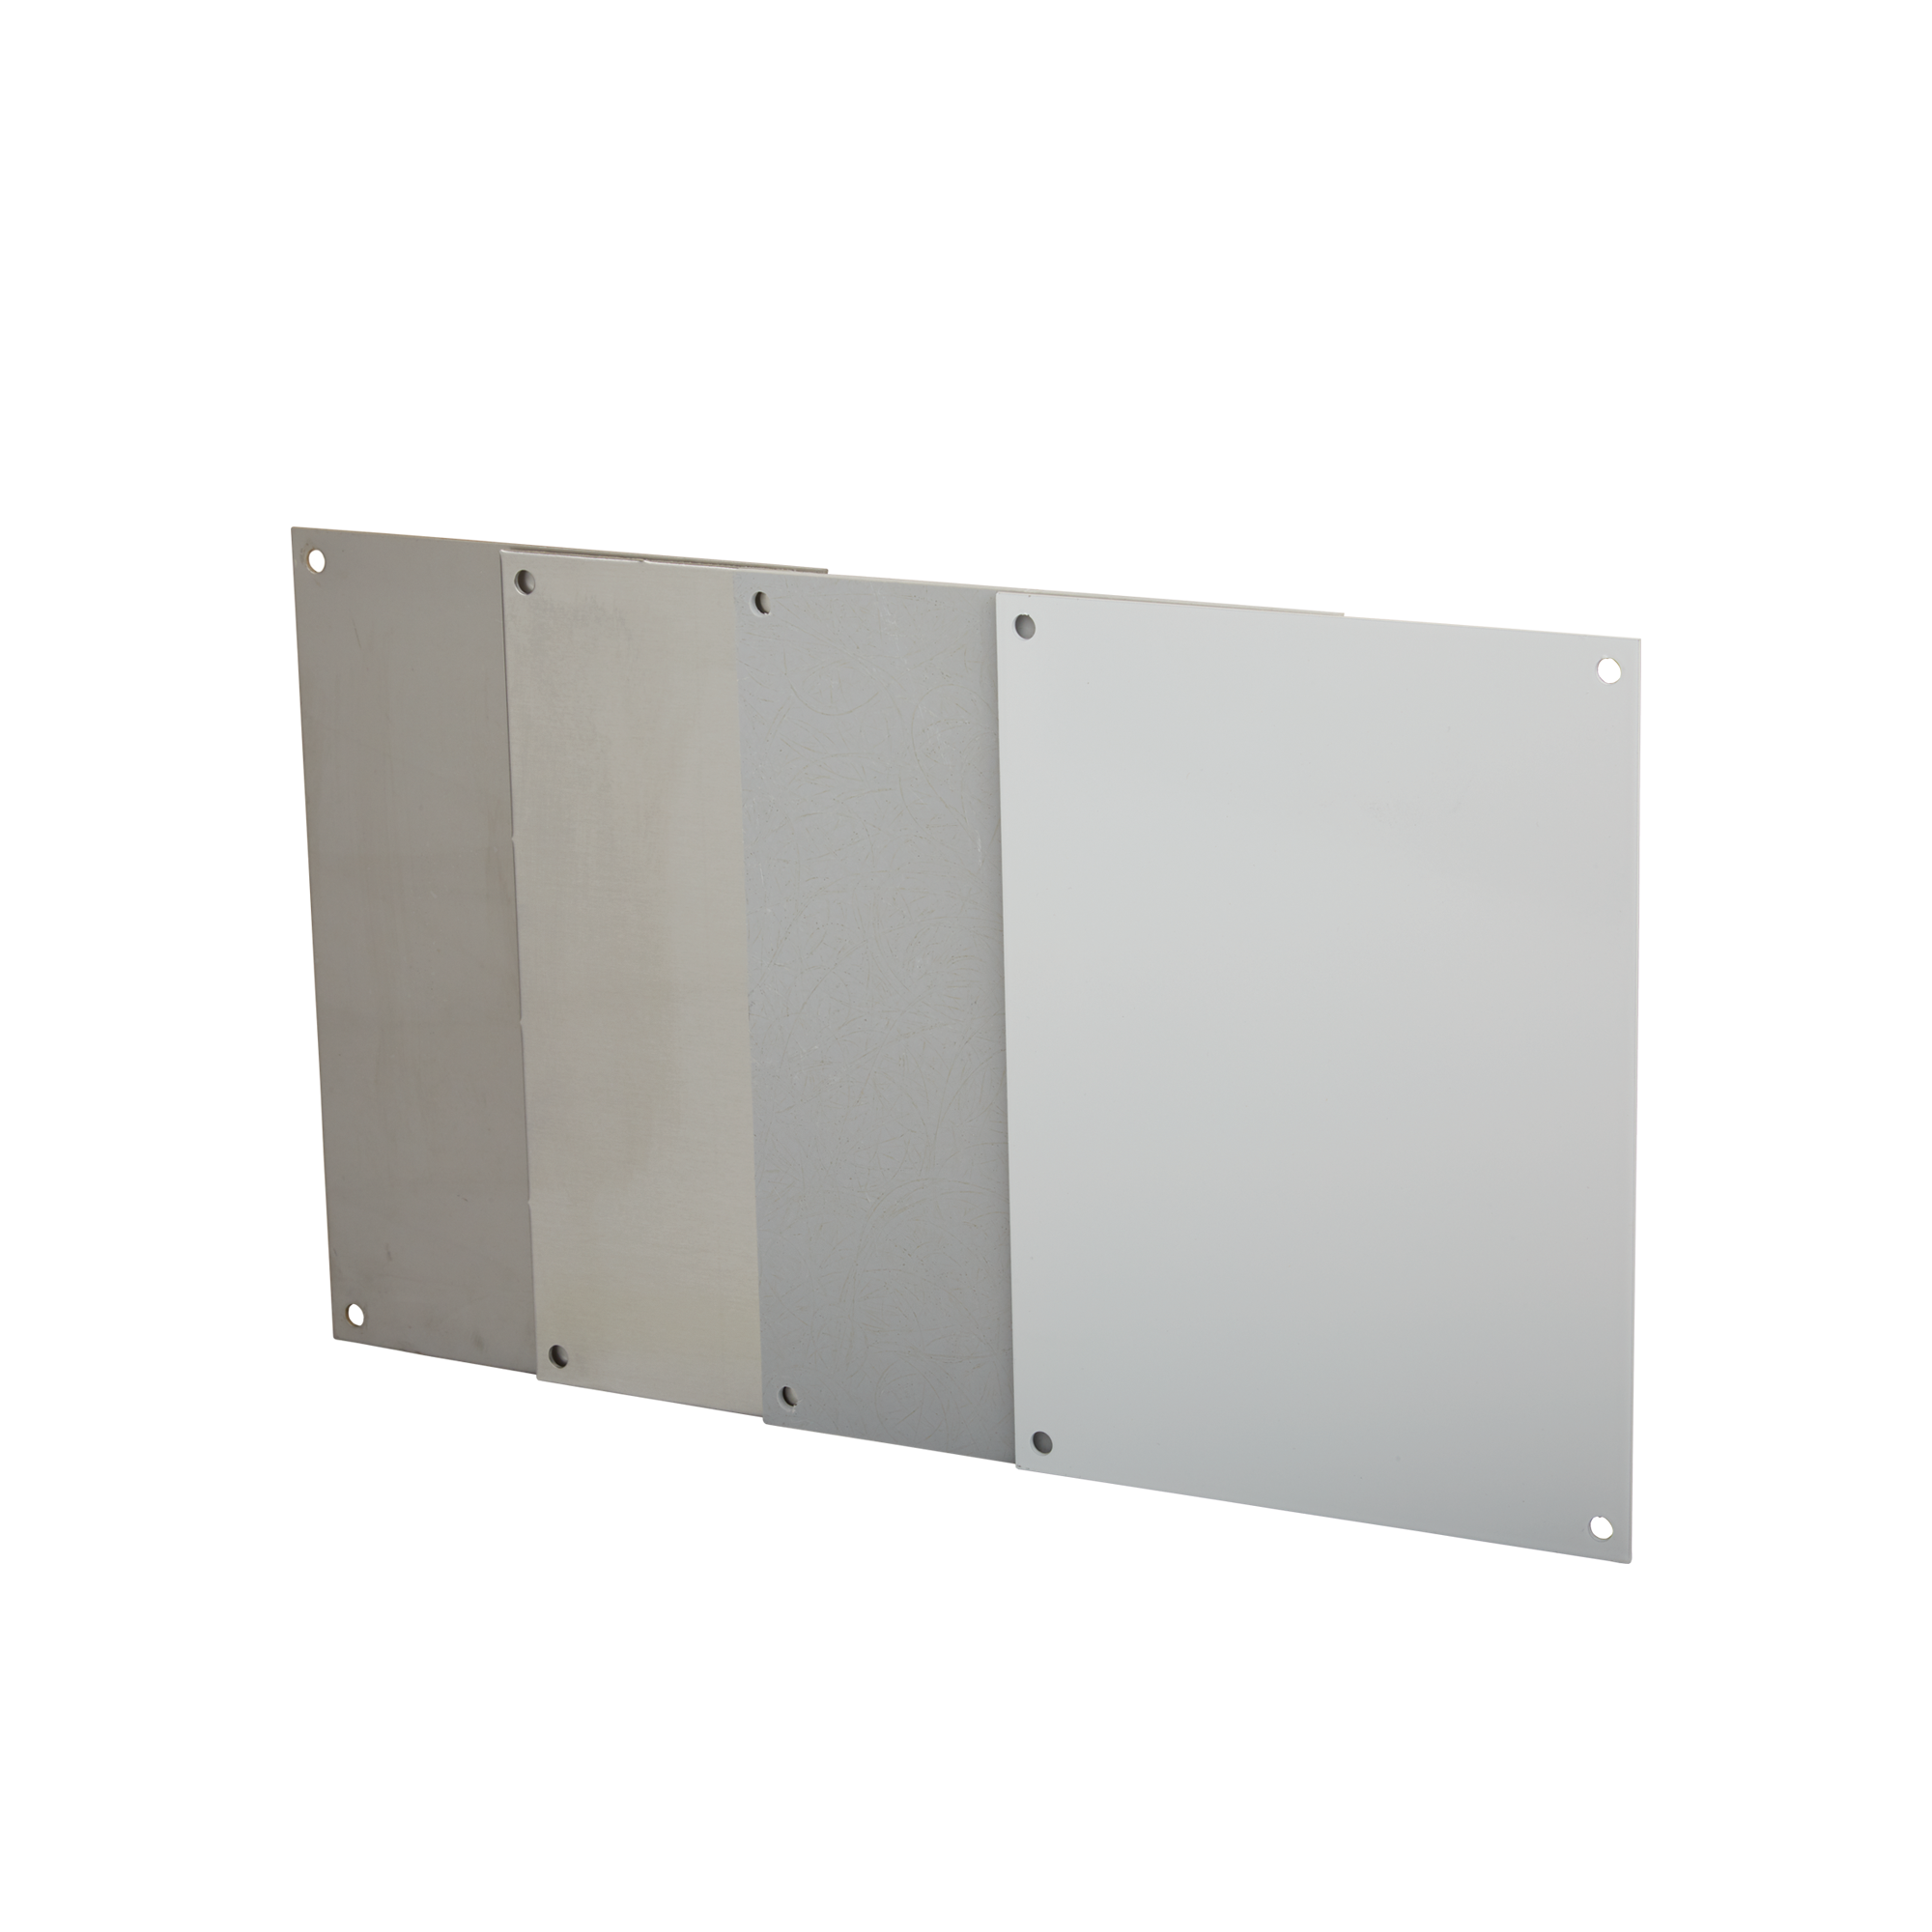 Electrical Enclosure Backplate